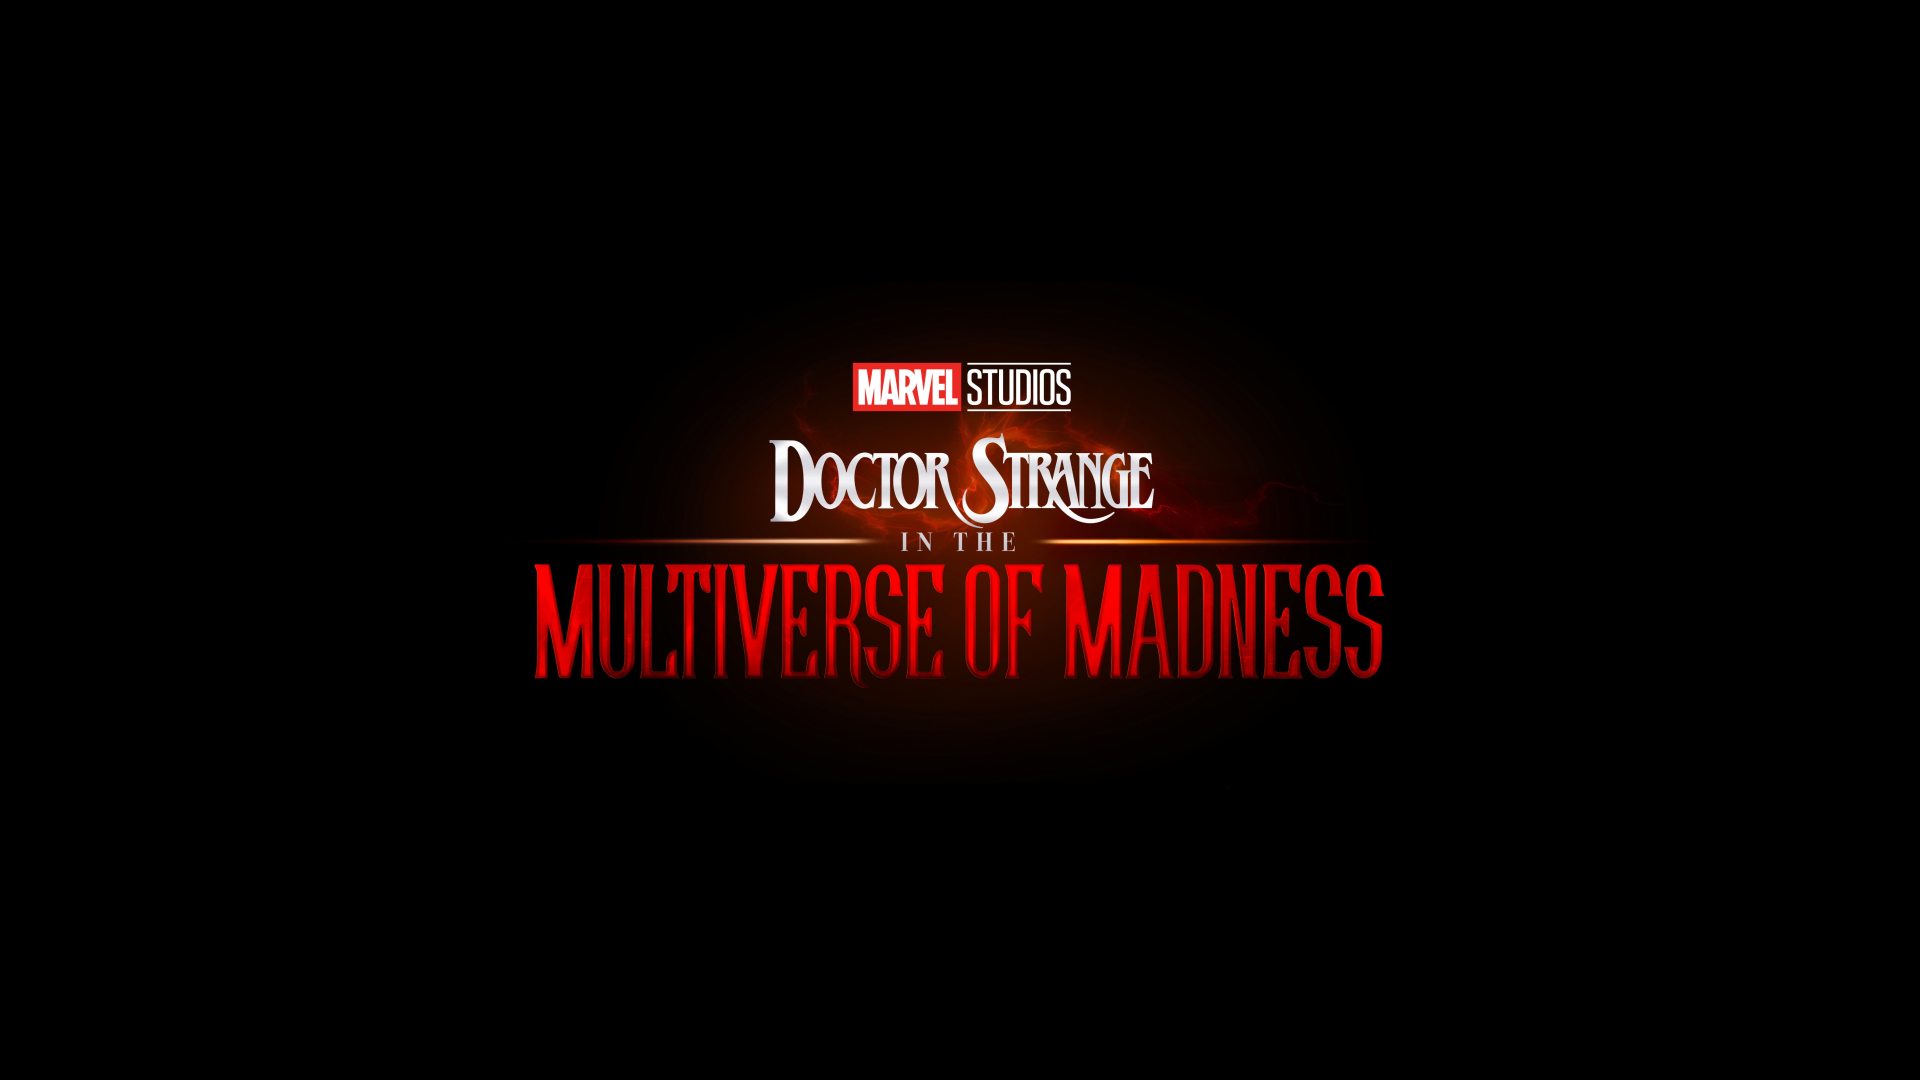 4K Ultra HD Doctor Strange in the Multiverse of Madness Wallpapers 1920x1080